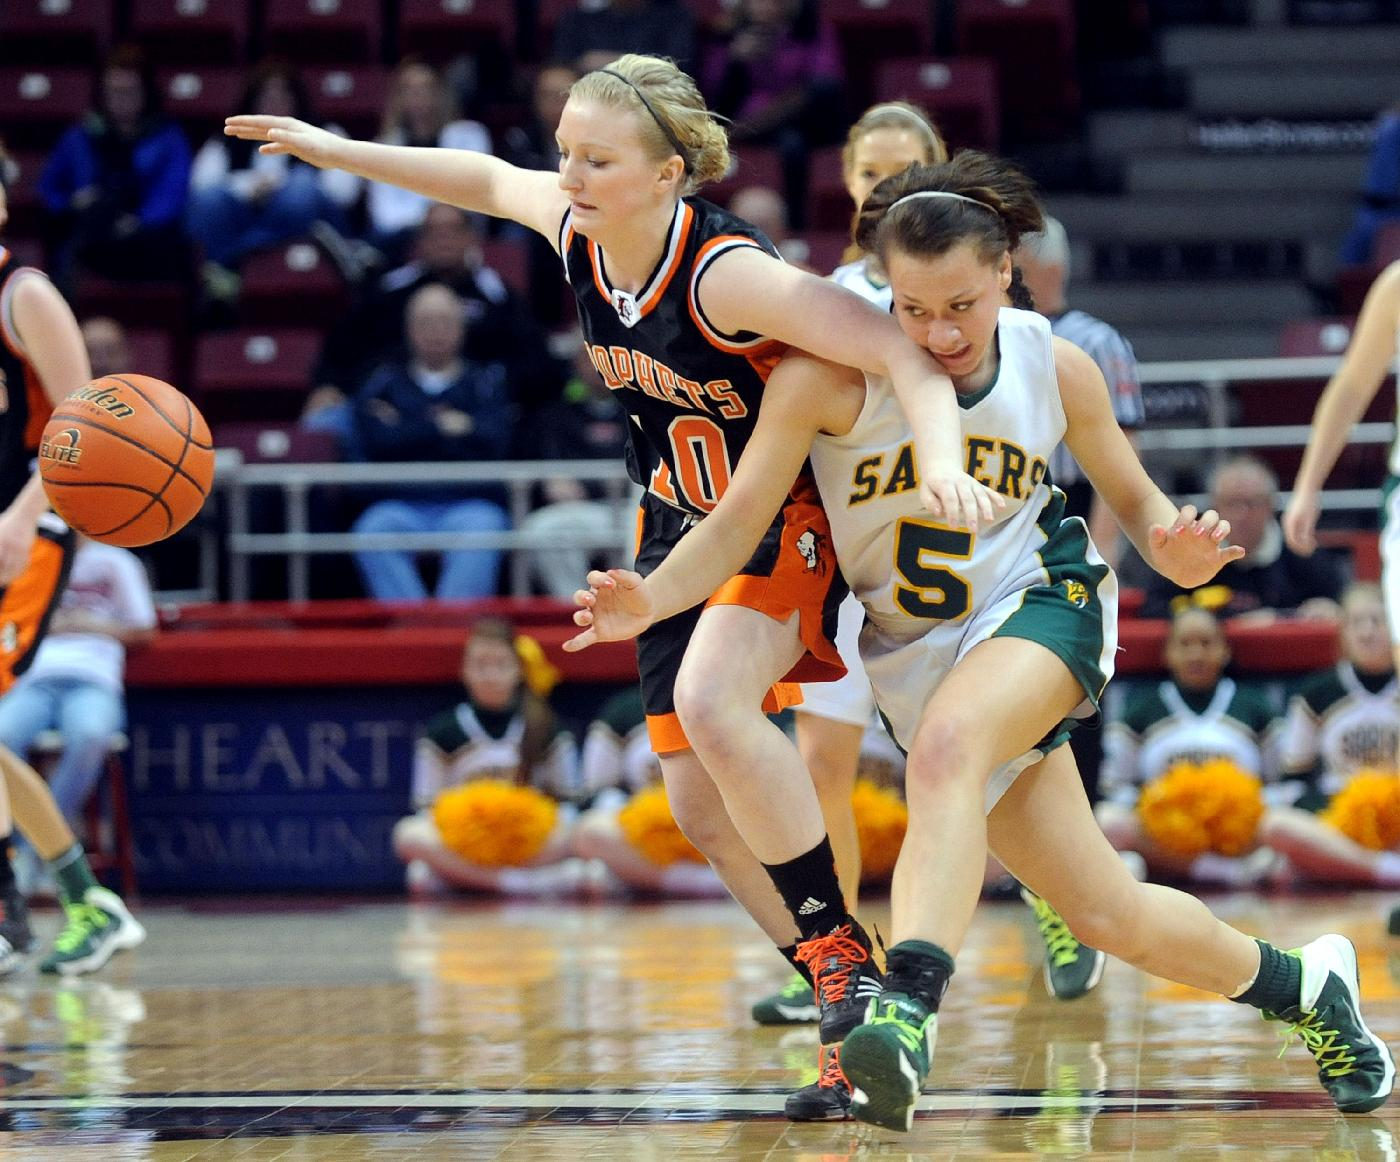 St. Thomas More's Elizabeth Bristow (5) and  Prophetstown's Kassi Henrekin (10) chase after a loose ball in the first half of the IHSA Girls' Basketball Class 2A State Championship game at Illinois State University's Redbird Arena in Normal, Ill.,  on Saturday, March 1, 2014